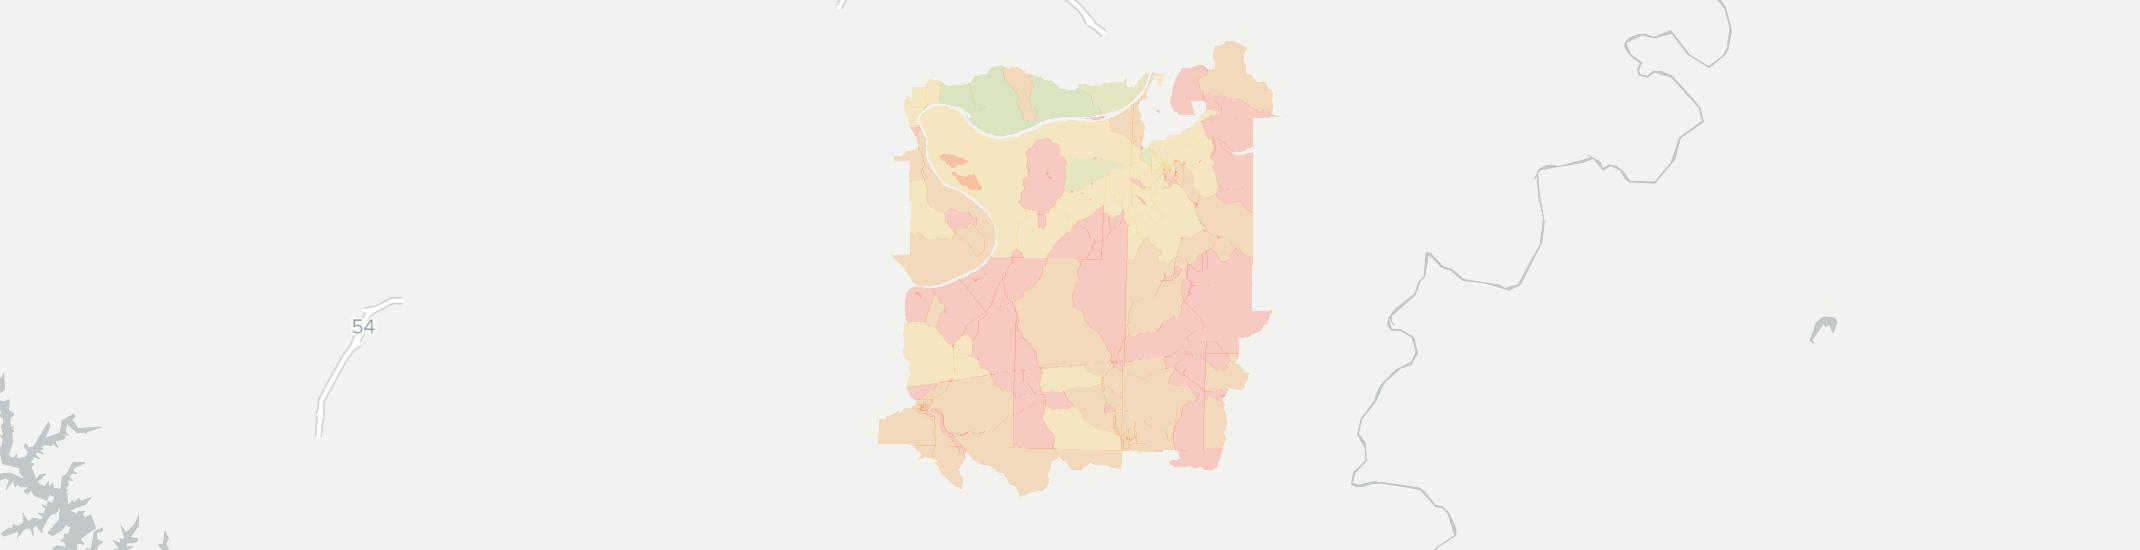 Westphalia Internet Competition Map. Click for interactive map.